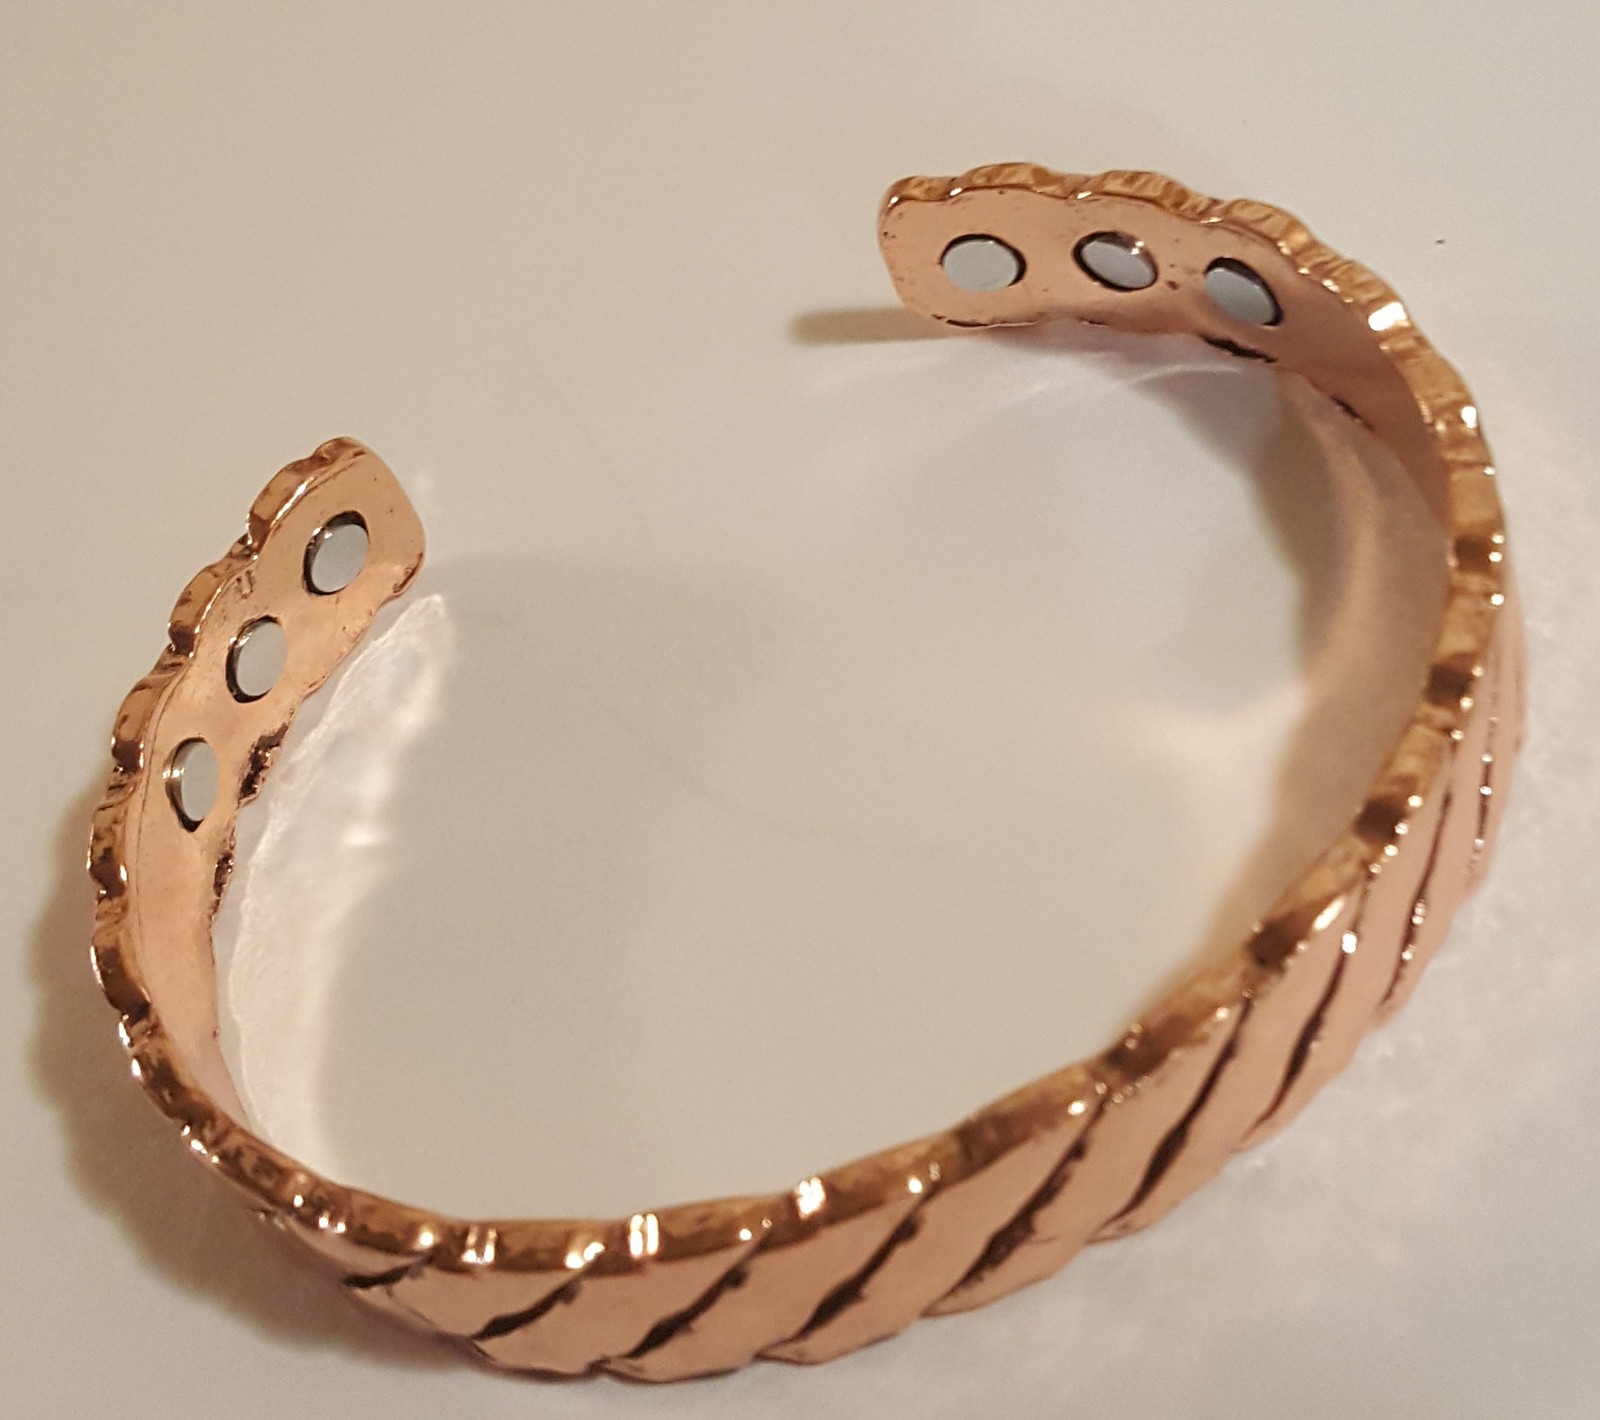 Copper Magnet Holistic Pain Relief Cuff Bracelet